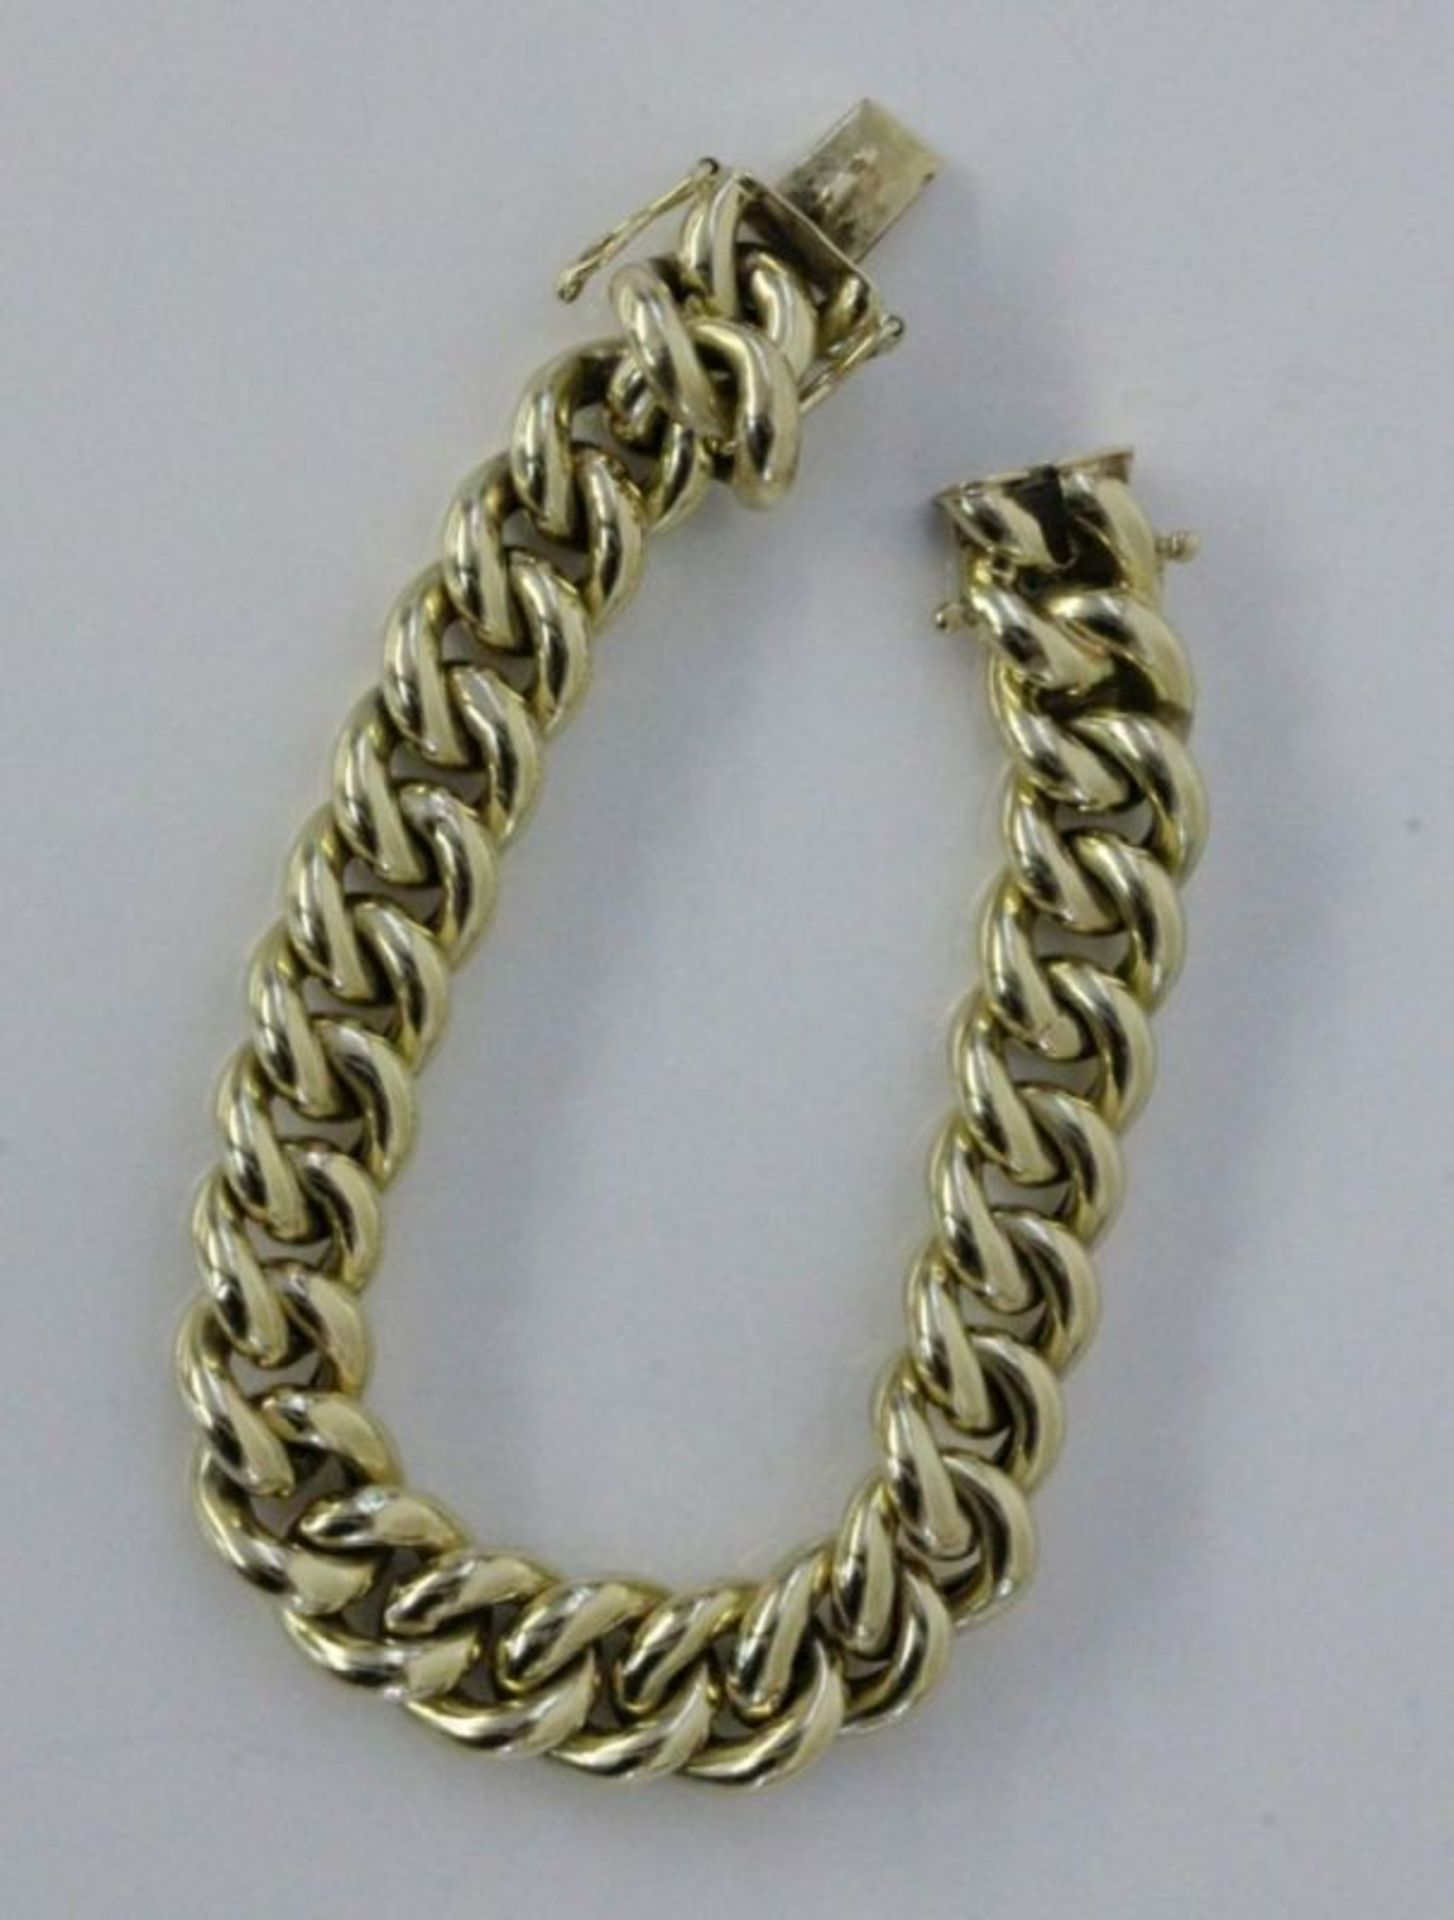 ARMBAND585/000 Gelbgold. L.19,5cm, ca. 31gA BRACELET 585/000 yellow gold. 19.5 cm long, approx. 31